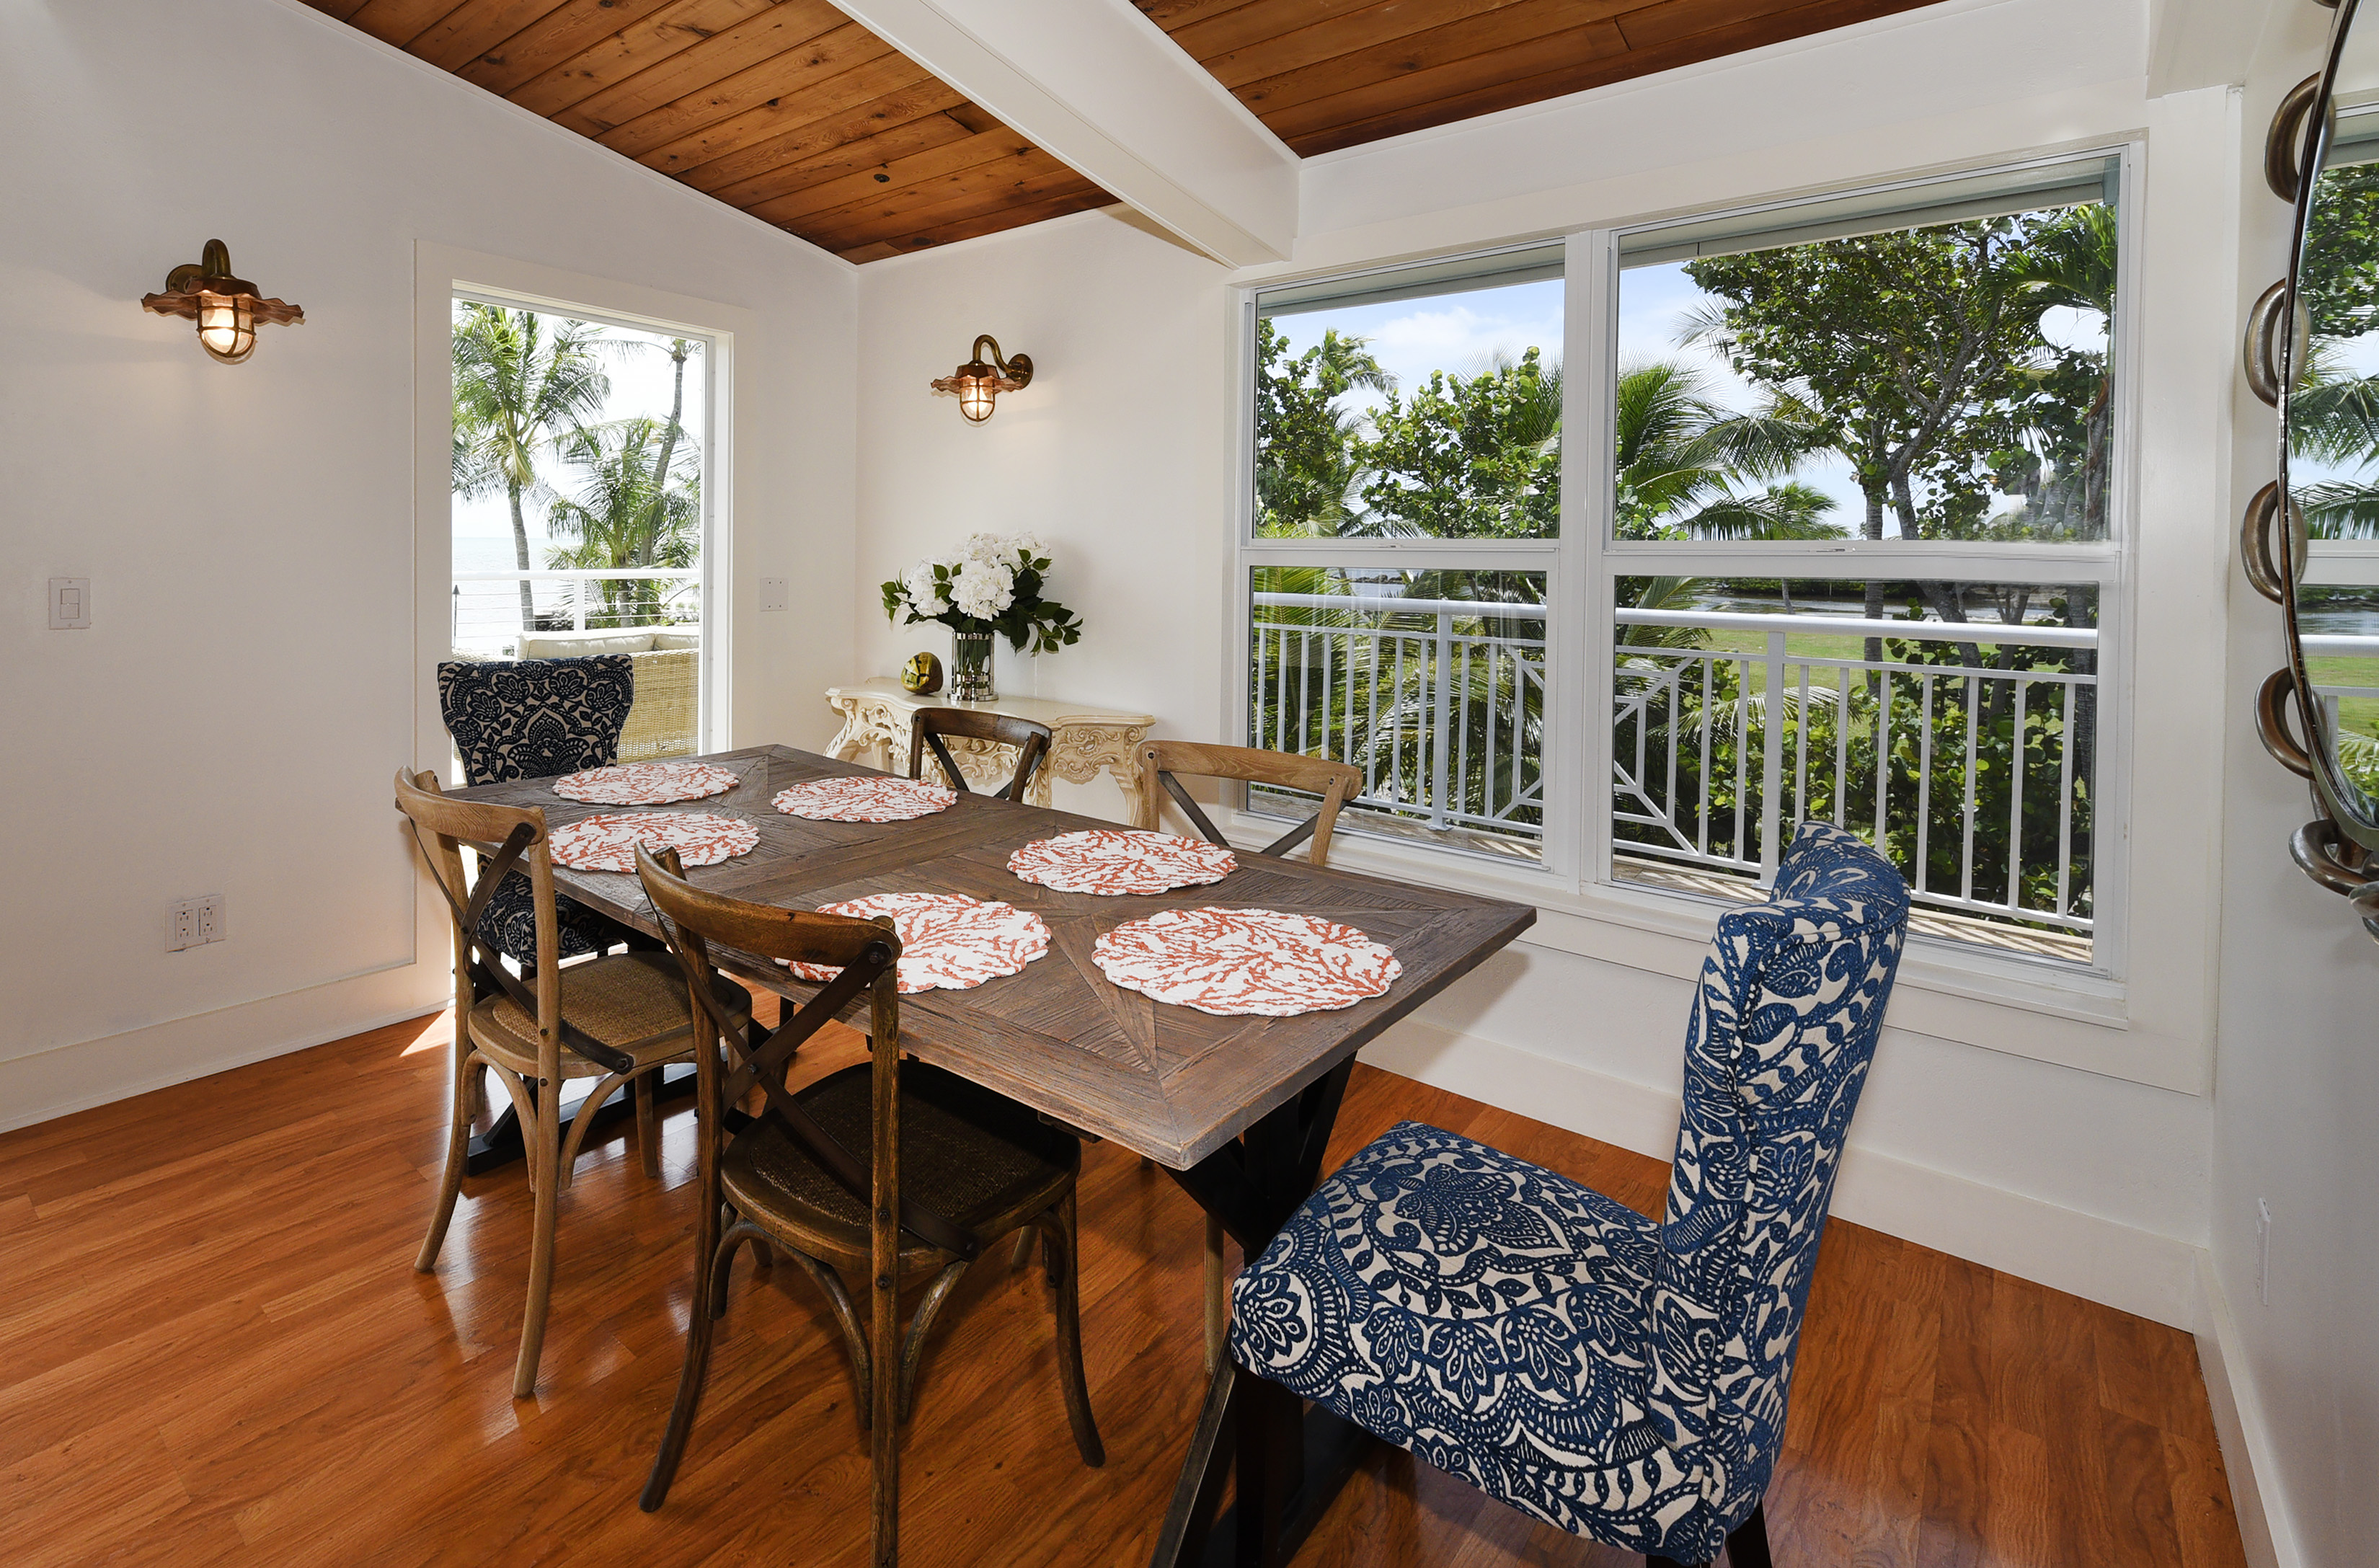 Additional photo for property listing at Turtle Key 87437 Old Highway Islamorada, フロリダ 33036 アメリカ合衆国